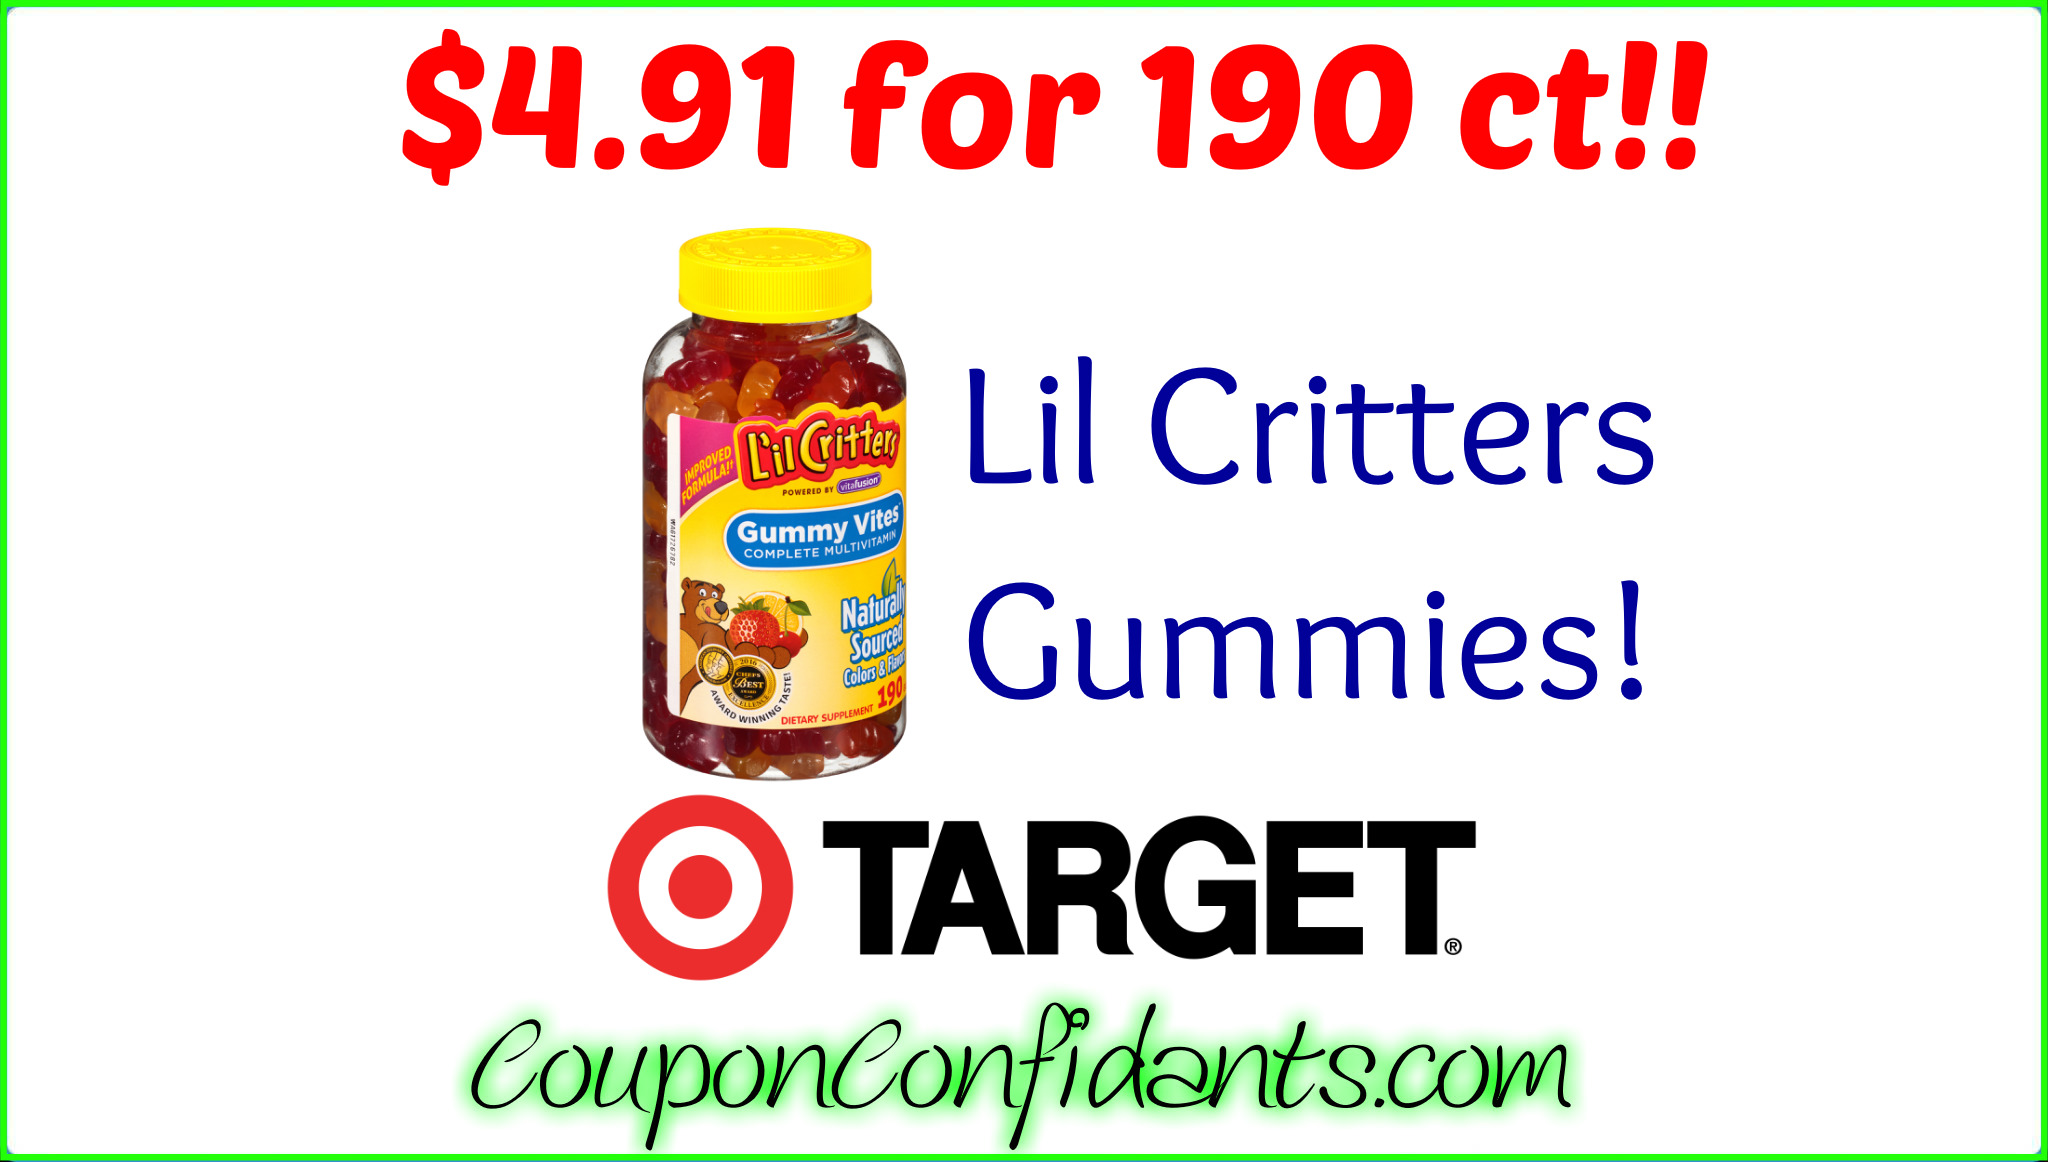 Lil Critters Gummy Vitamins at Target!!